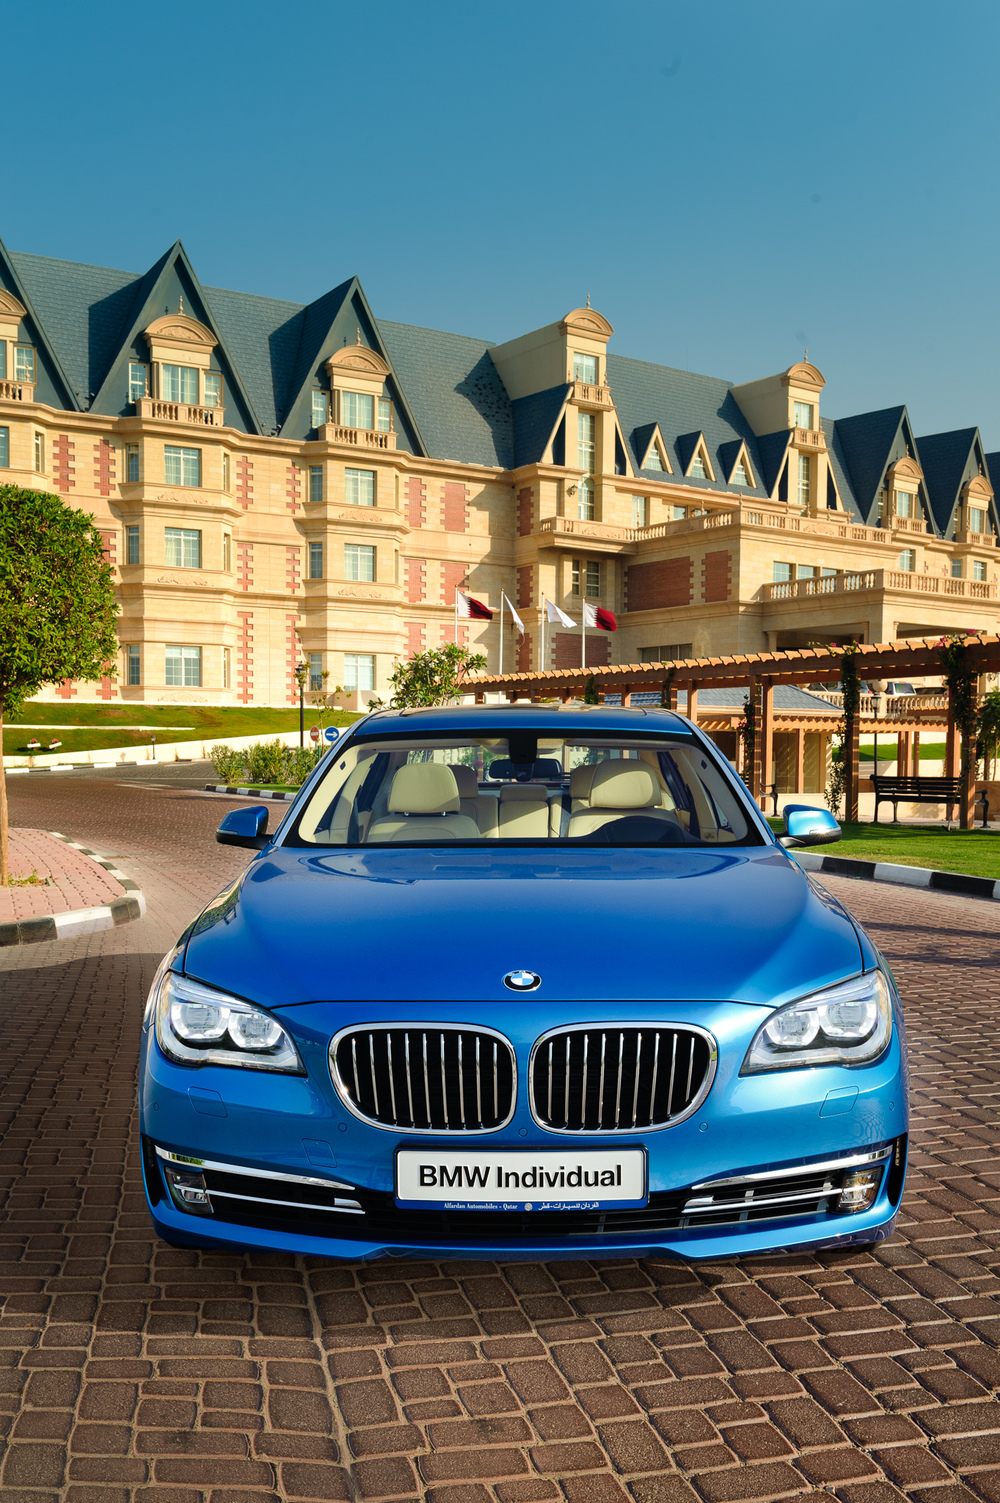 BMW_7series_WebSize-013.jpg